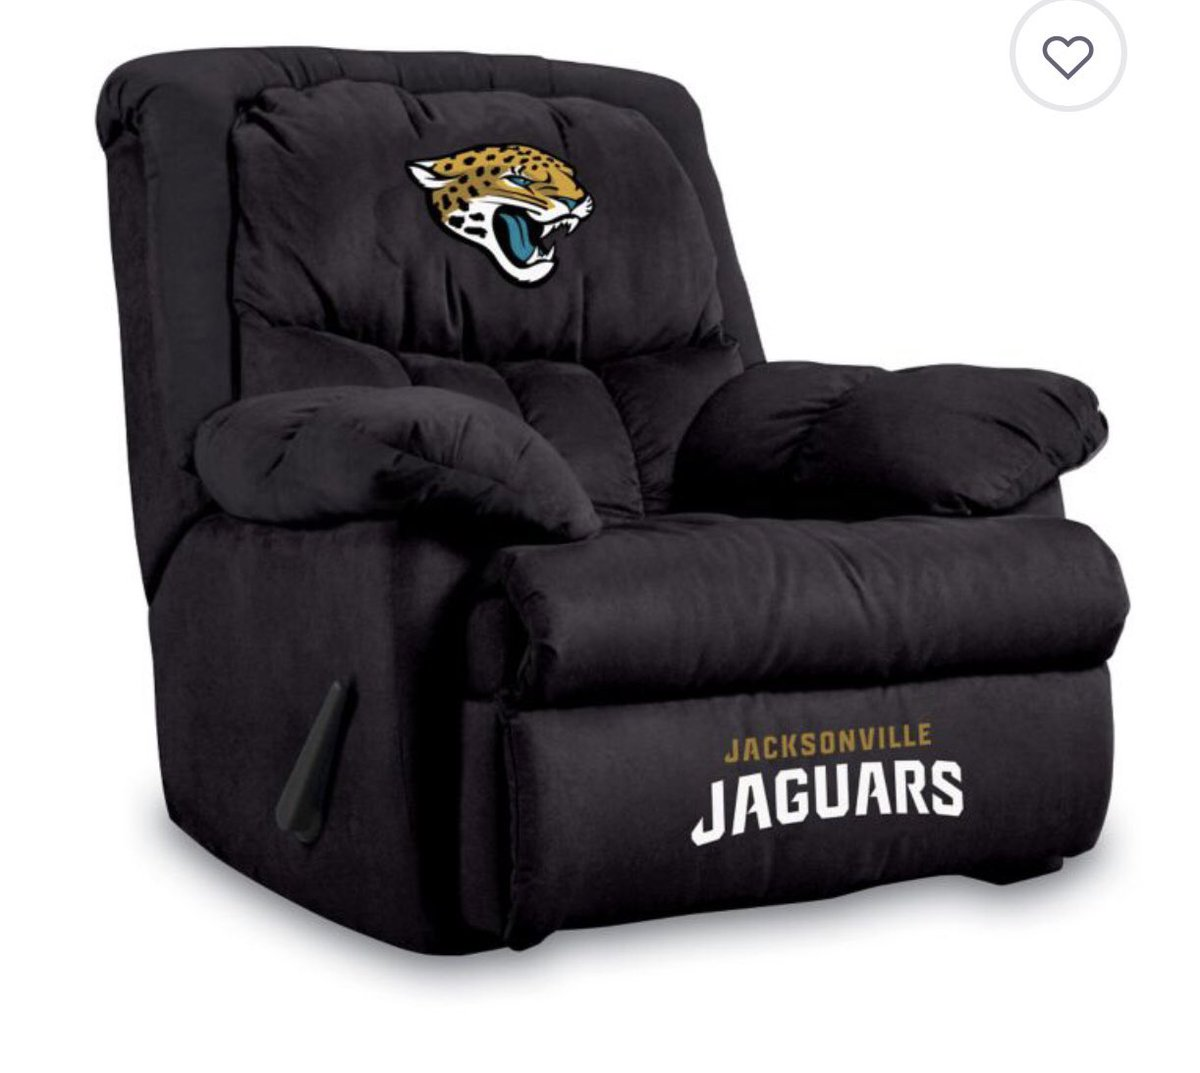 My wife has agreed, 25k retweets and I can get these for the house! Please help a brother out!